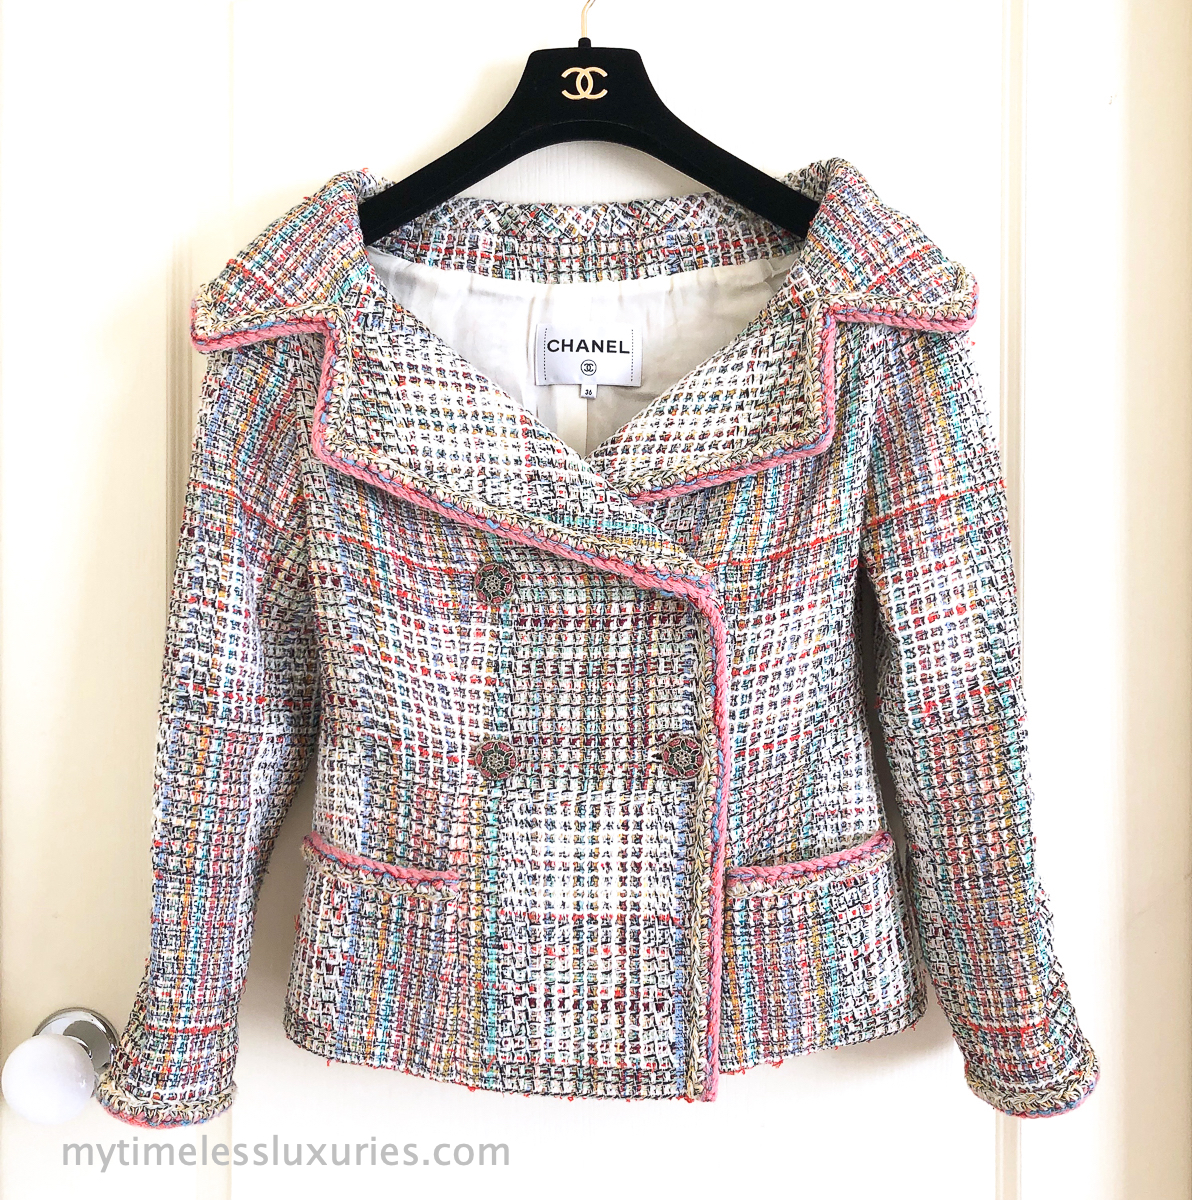 tweed fabric chanel women clothing manufacturing companies